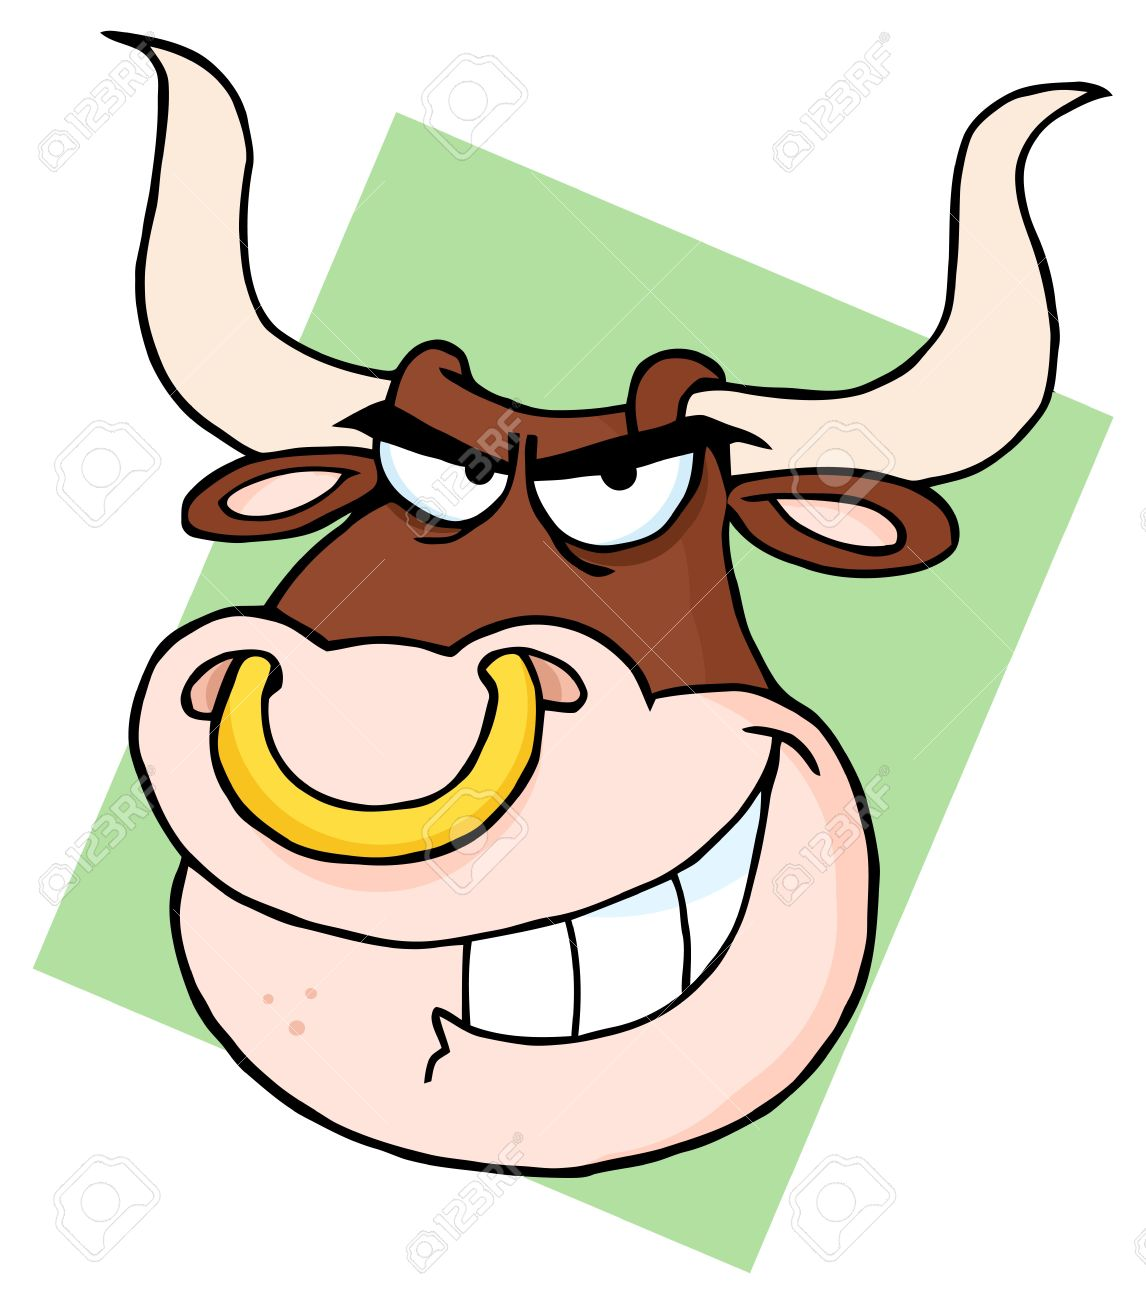 1146x1300 Longhorn Cattle Clipart Cartoon Free Collection Download